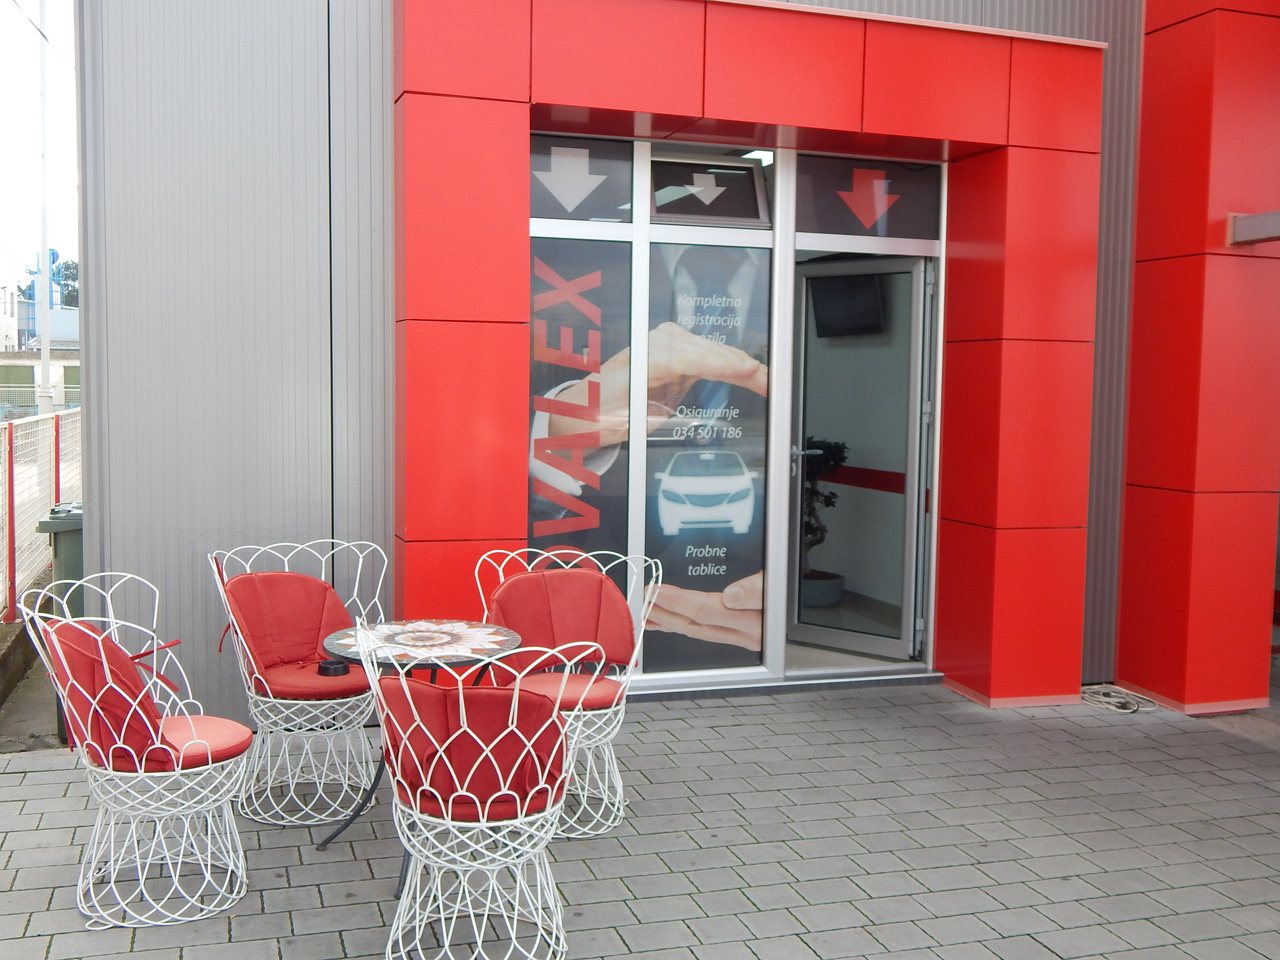 CAR CENTER JOVALEX LTD Second hand car shops Kragujevac - Photo 6